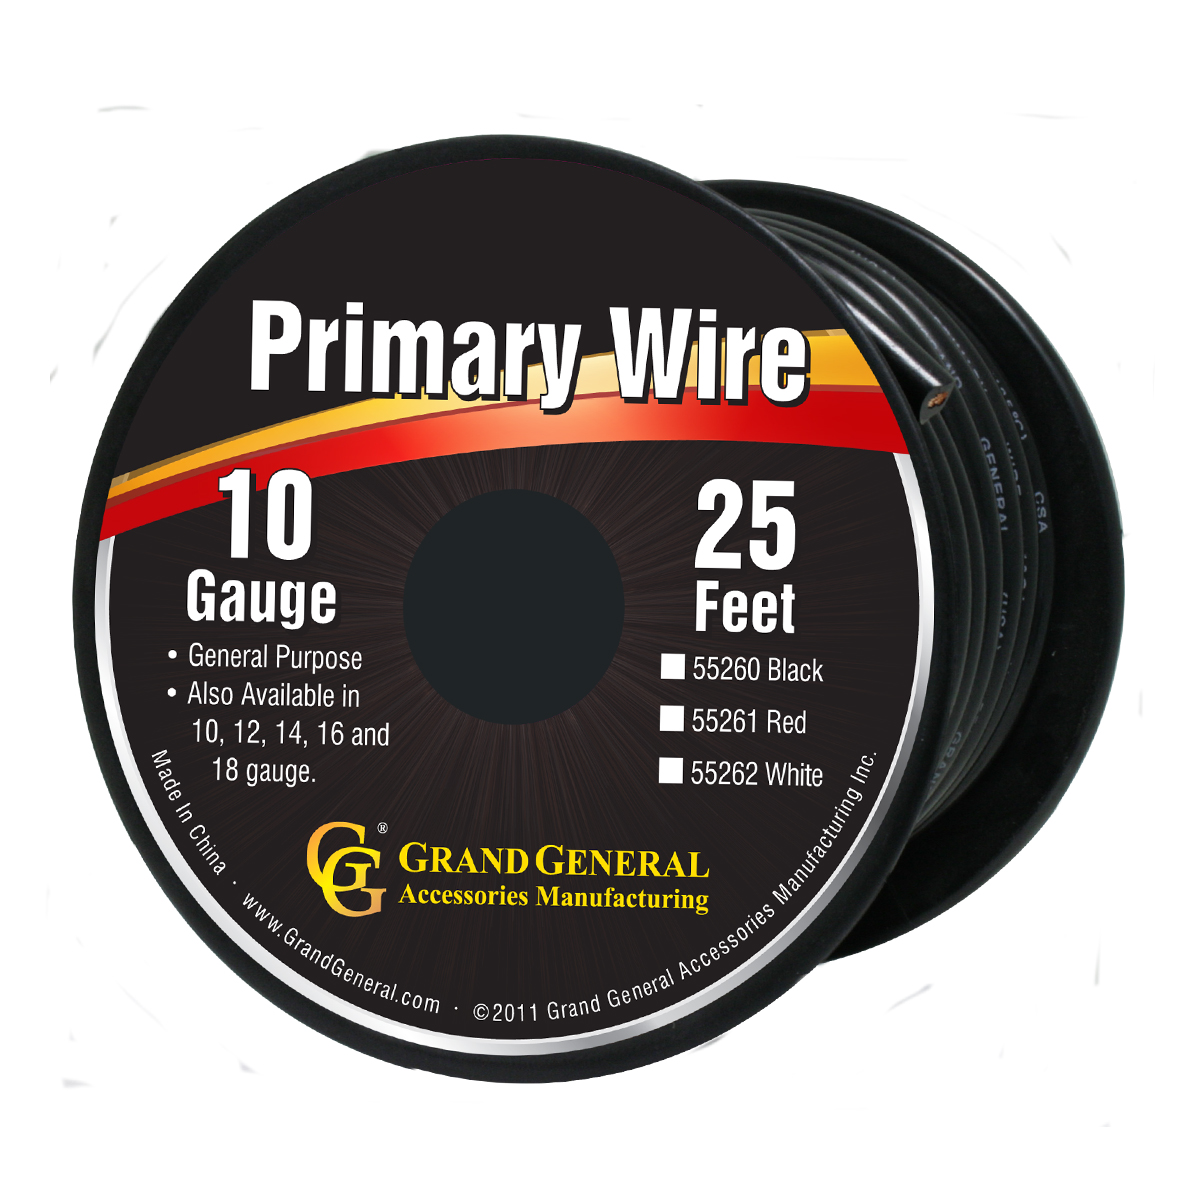 55260/55260SP Primary Wire in 10 Gauge, 25 Feet